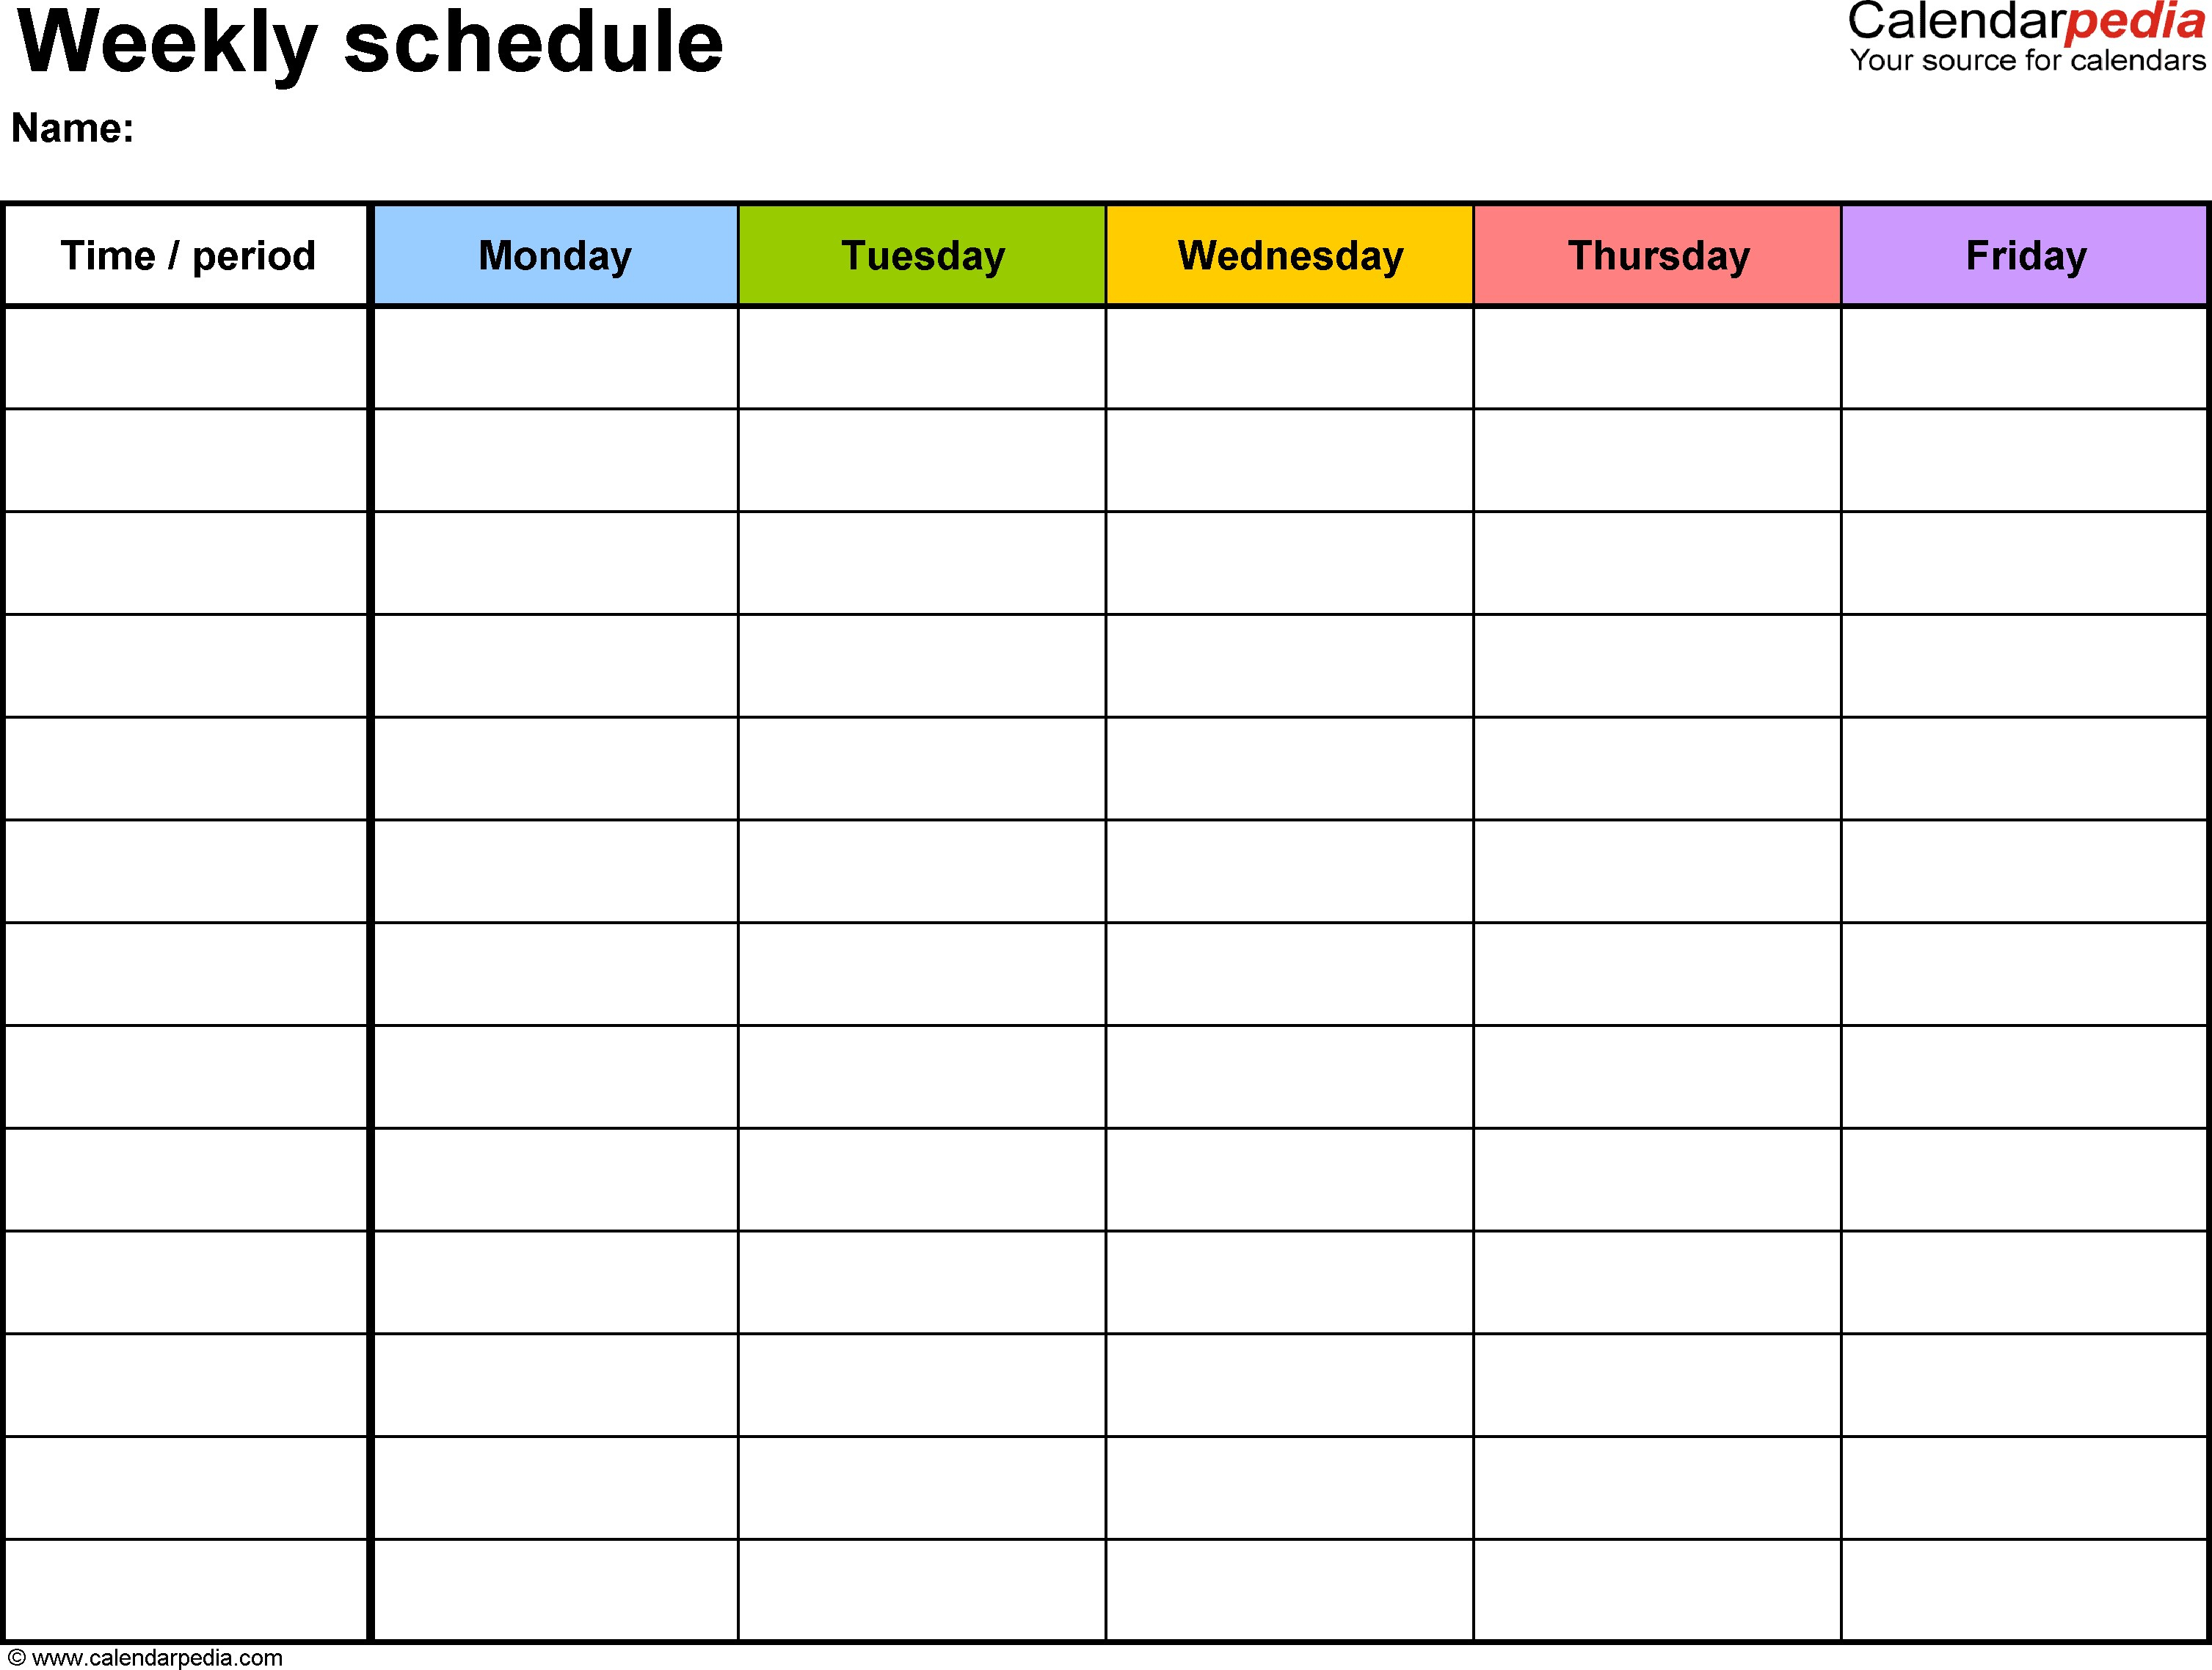 Weekly Calendar With Time Slots – Printable Month Calendar for Printable Calendar With Times Slots